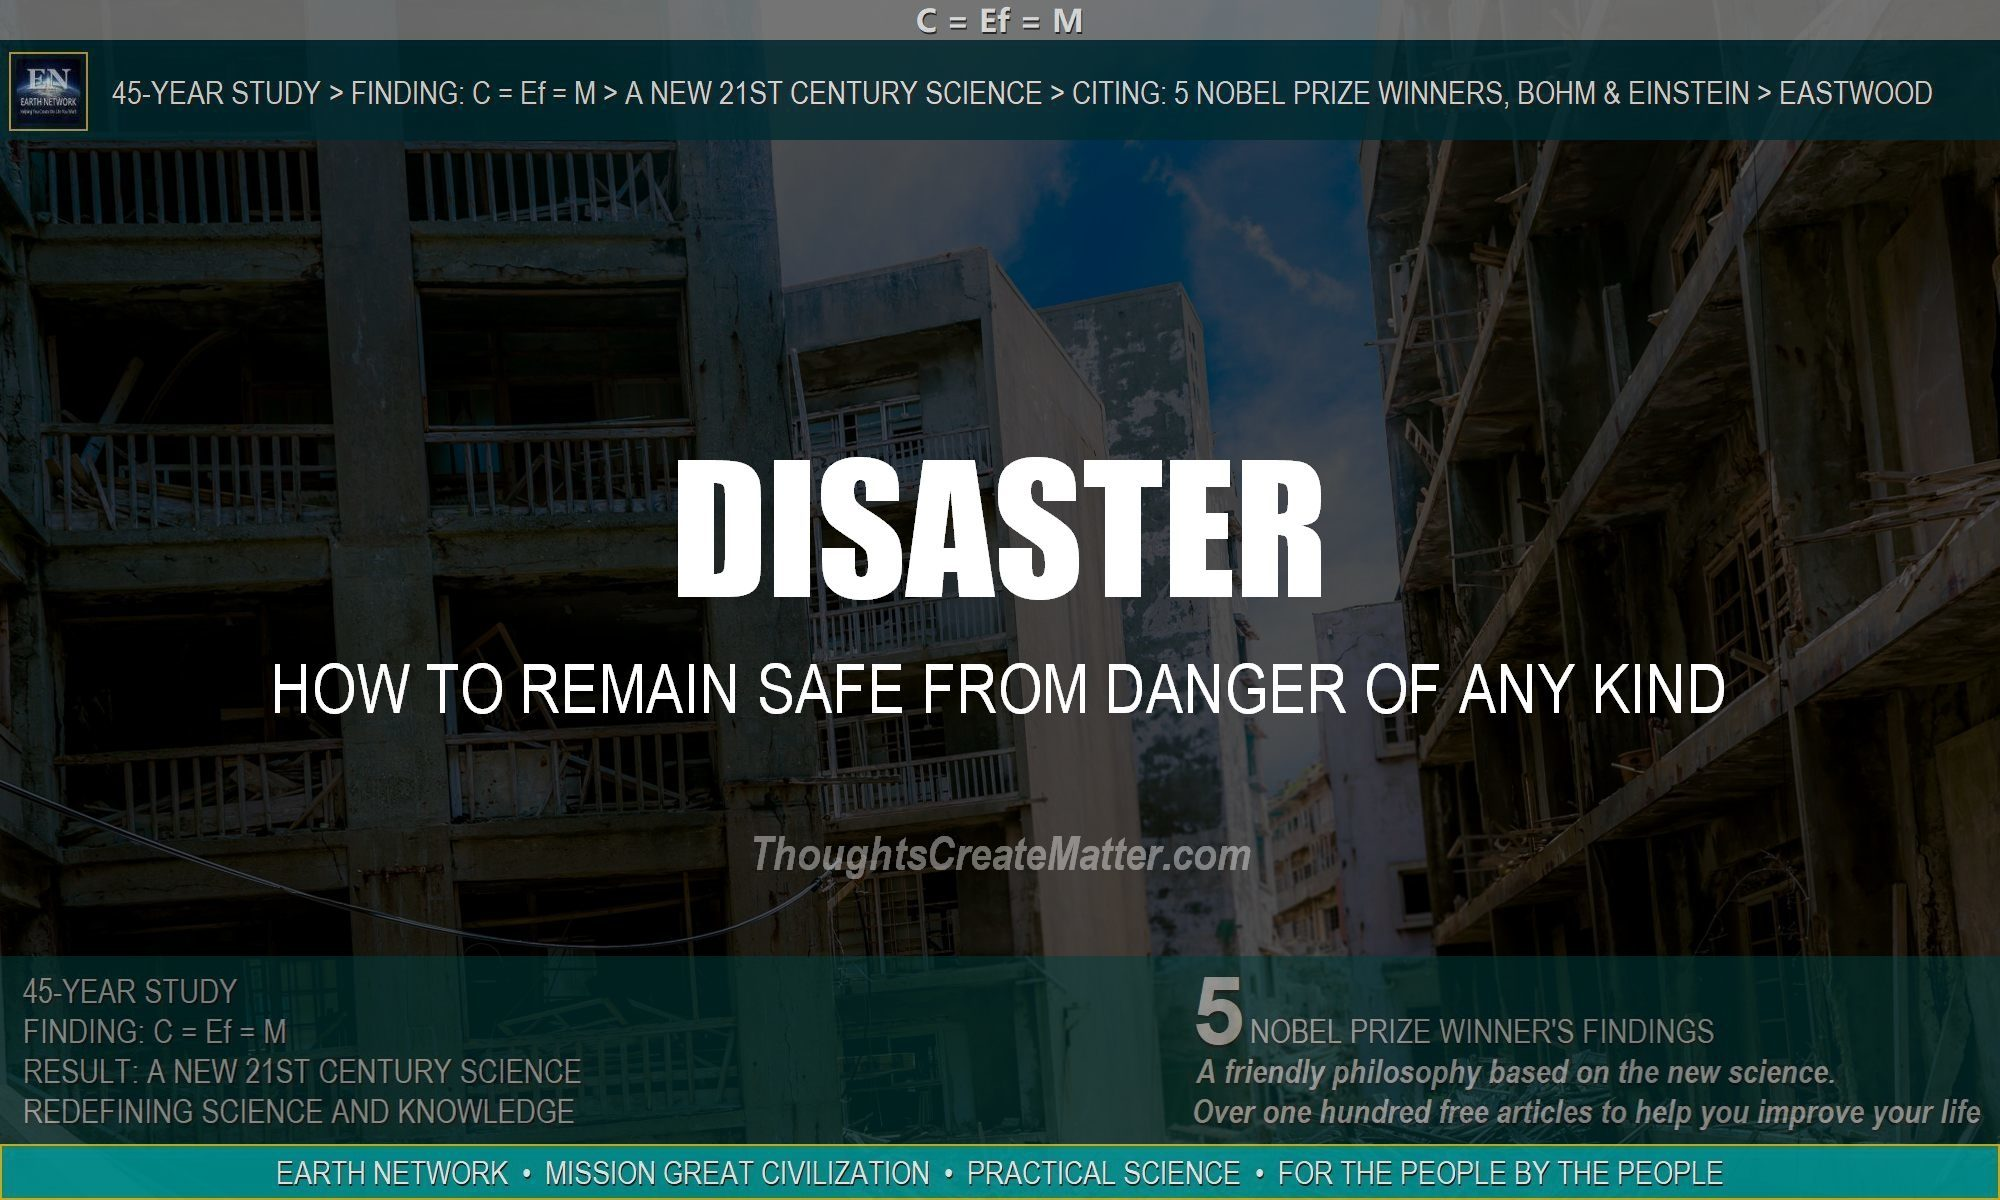 Buildings in Florida and other states can collapse because of sink holes or for other reasons such as climate change. Although there is increasing risk we offer a way to avoid danger and remain safe.